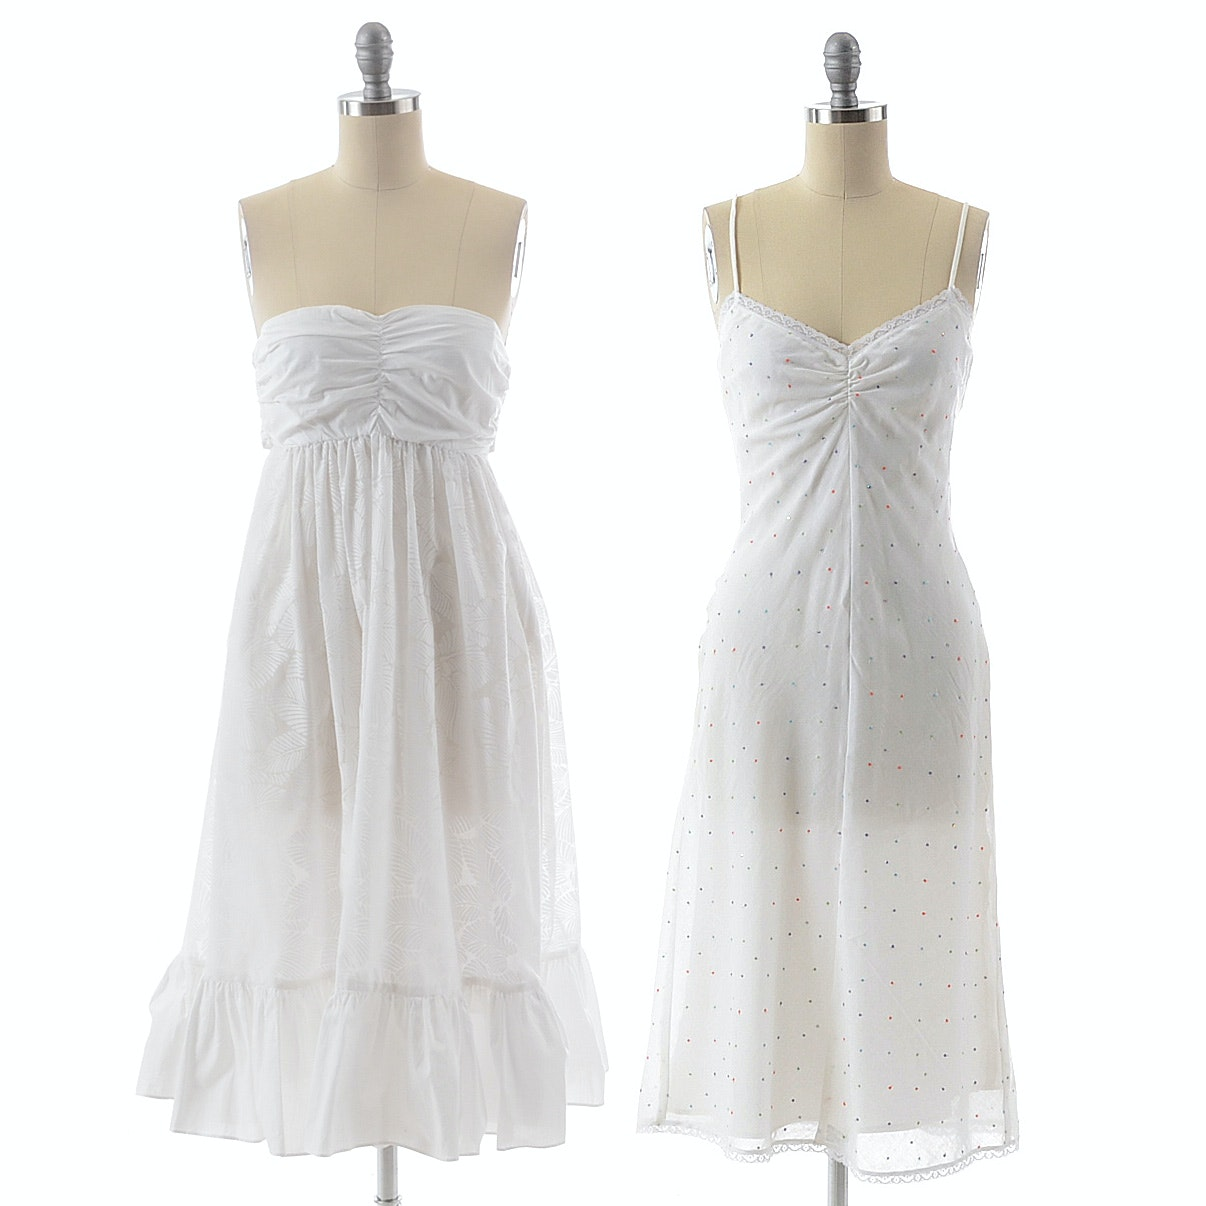 Two Sun Dresses in White Cotton by Rebecca Taylor and The Island Company